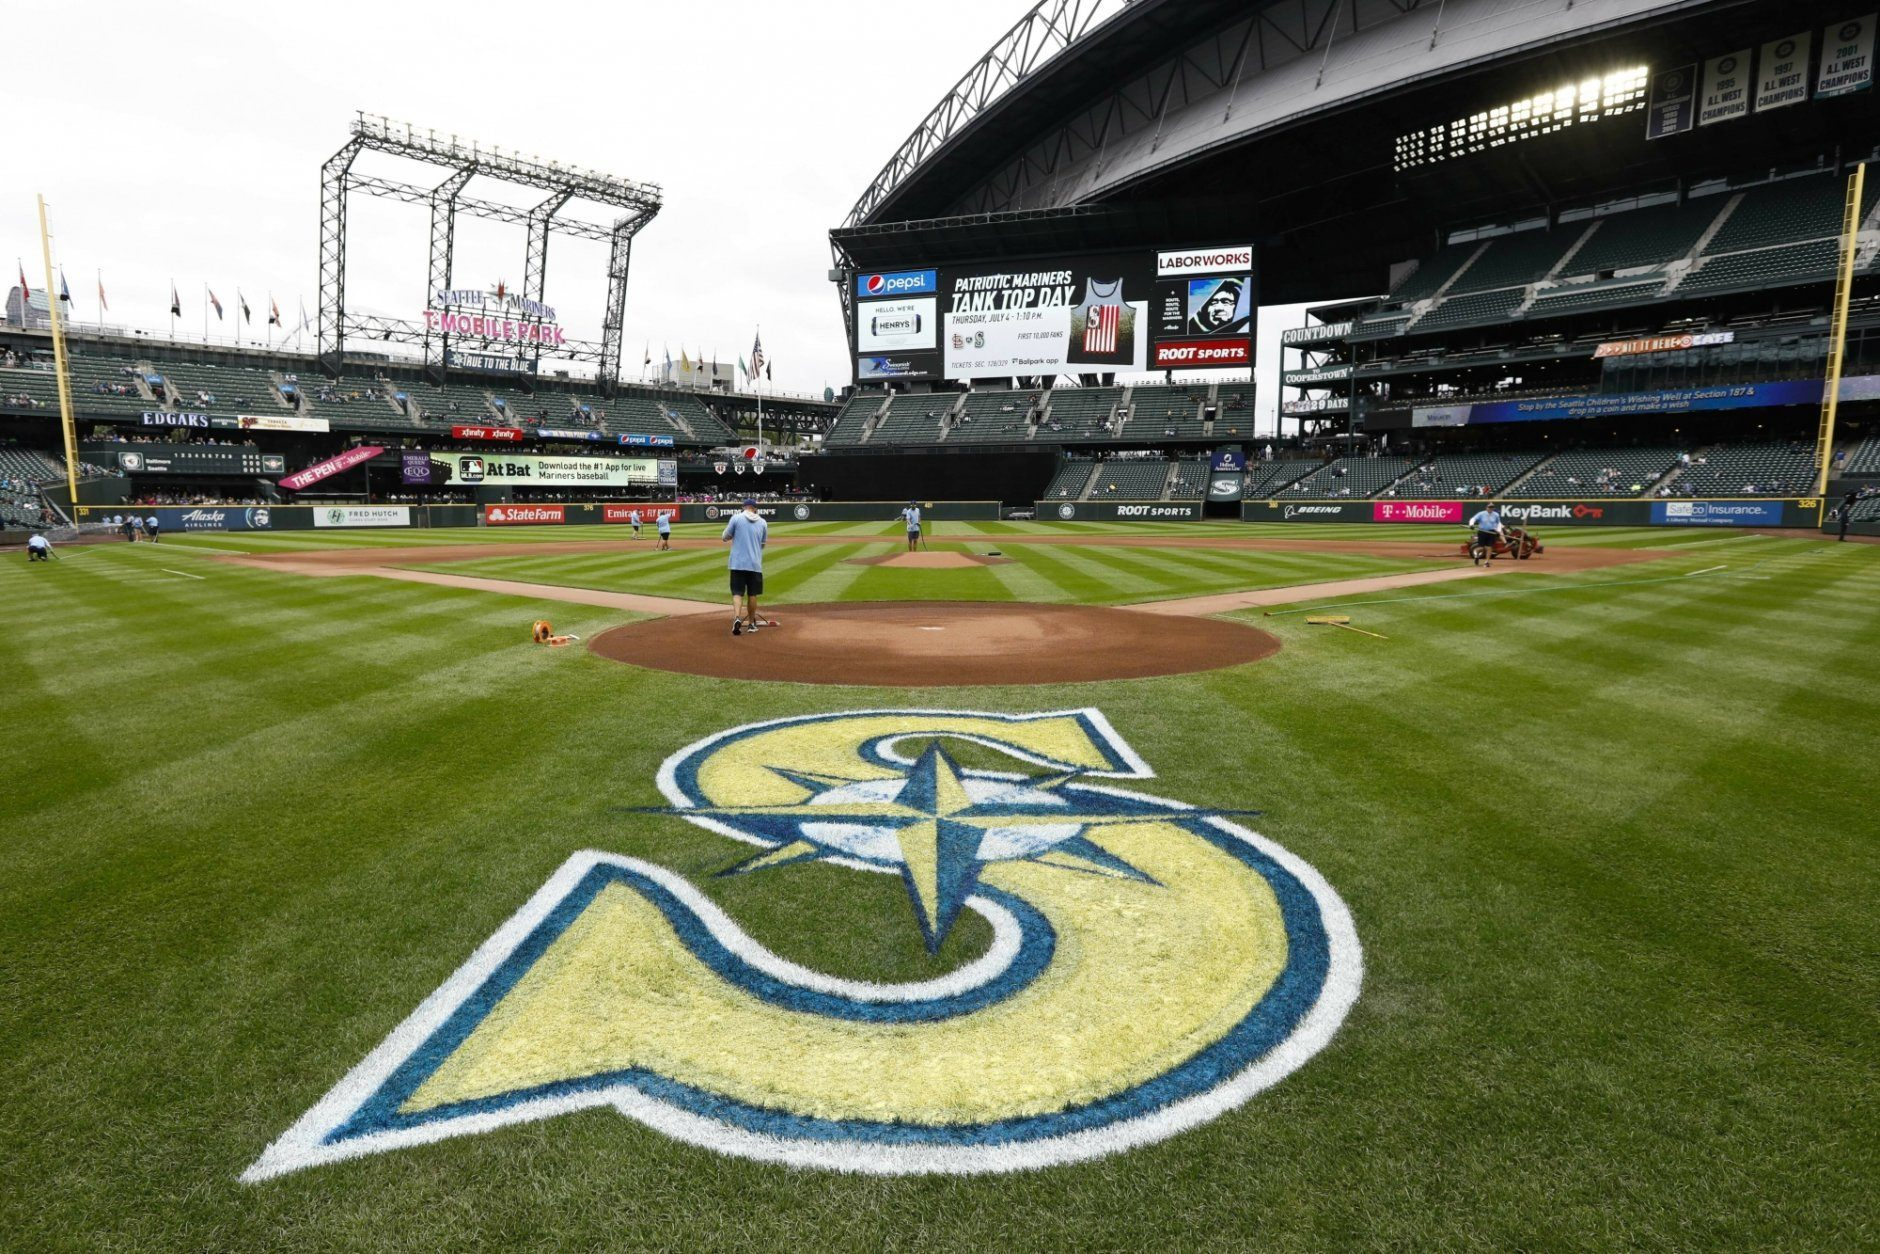 Groundskeepers prepare the infield before a baseball game between the Baltimore Orioles and the Seattle Mariners, Saturday, June 19, 2019, in Seattle. (AP Photo/Joe Nicholson)